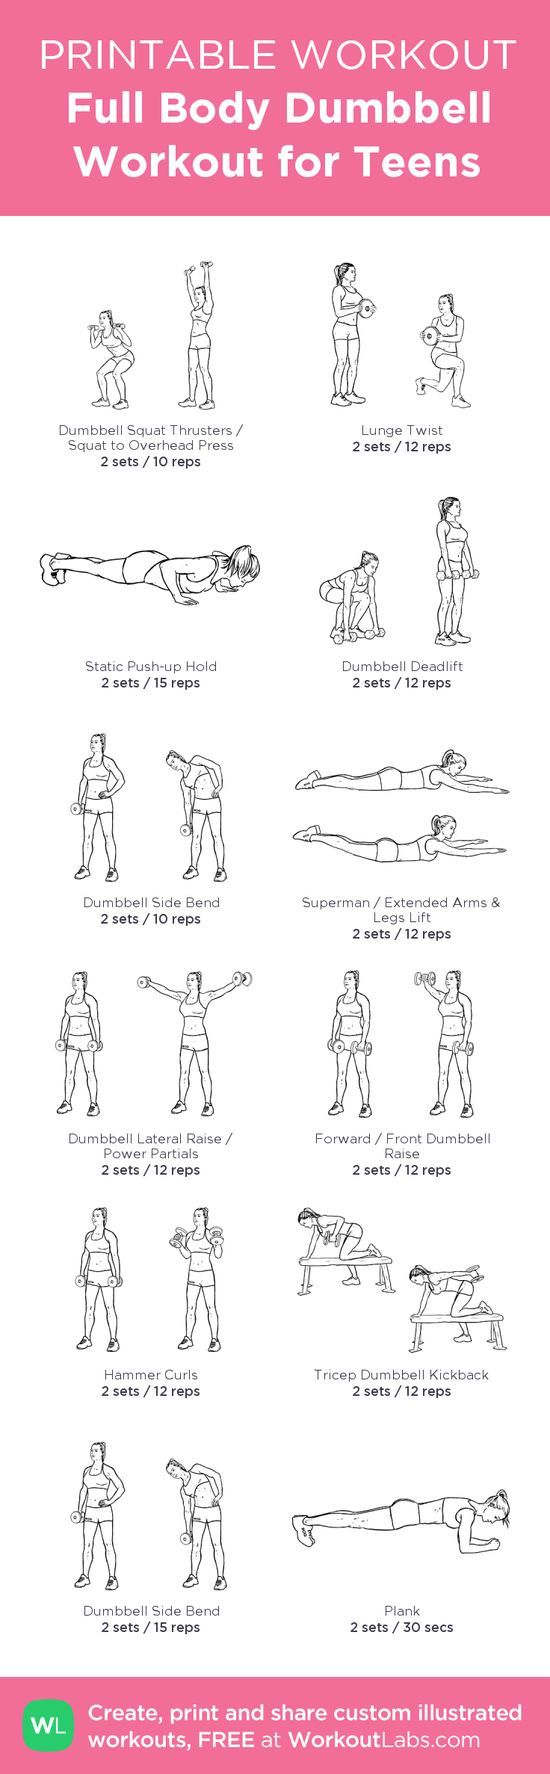 Full Body Dumbbell Workout for Teens – my custom workout created at WorkoutL • Click through to download as printable PDF!   http://workout.kira.lemoncoin.org